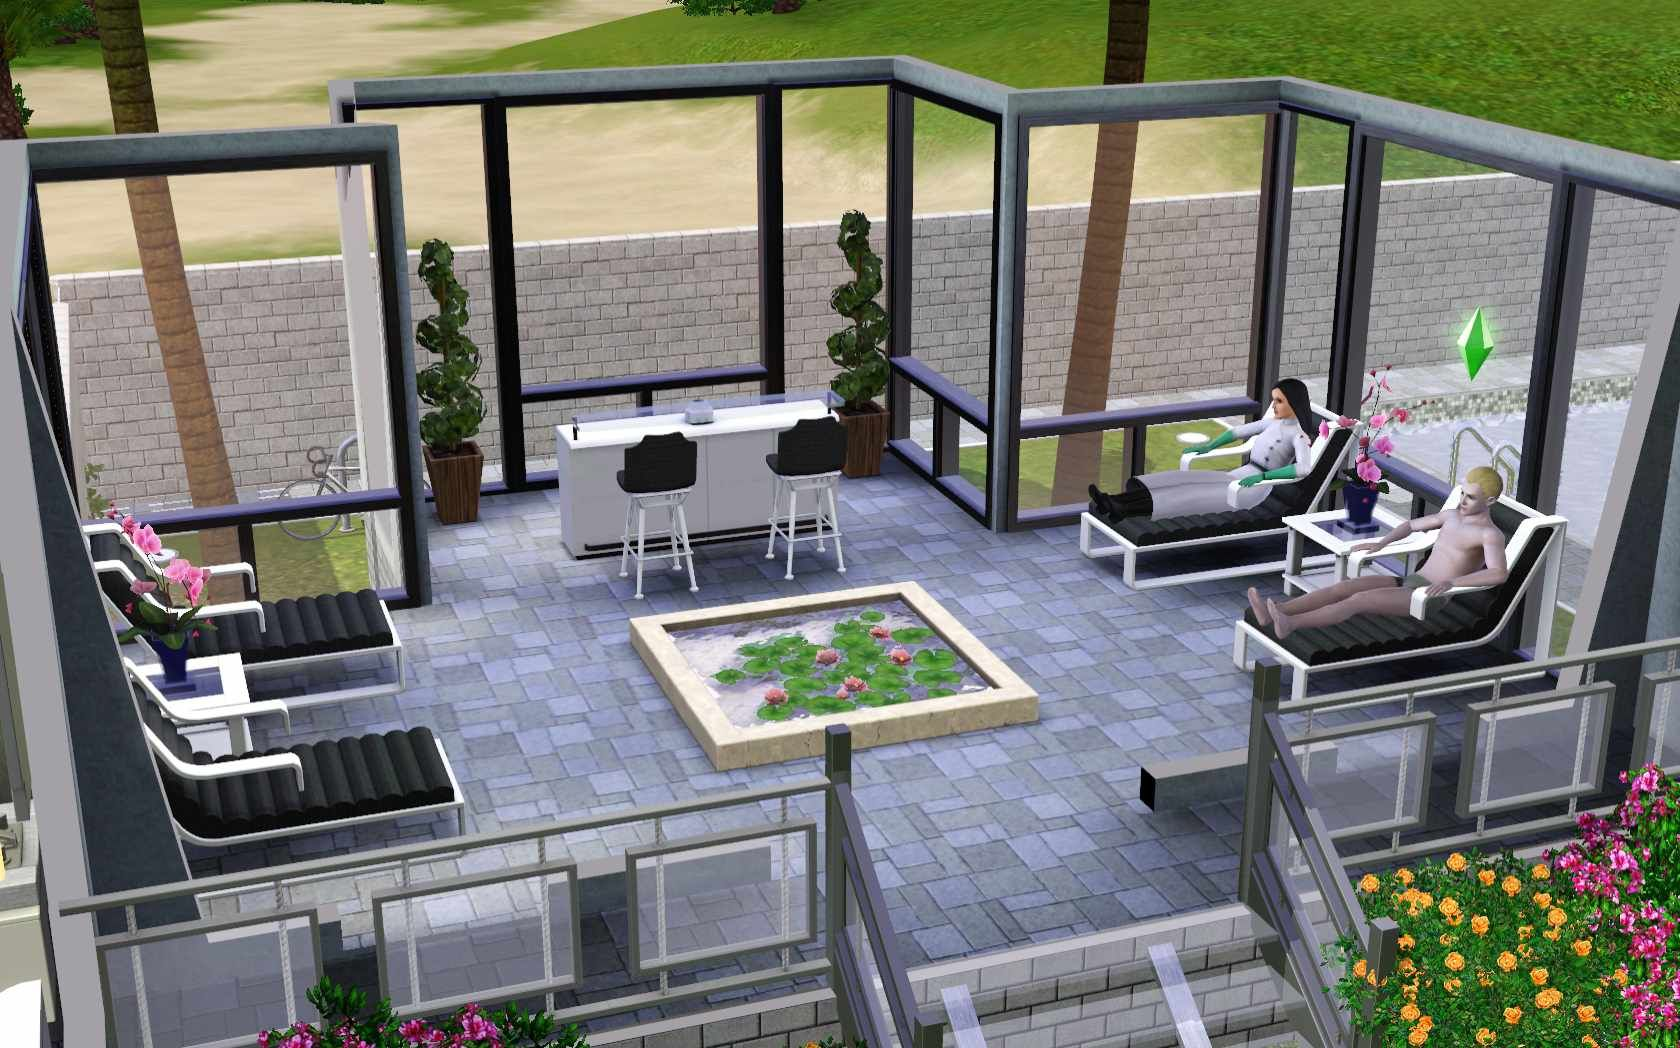 The Sims 3 Home Building And Design Video Game Designs